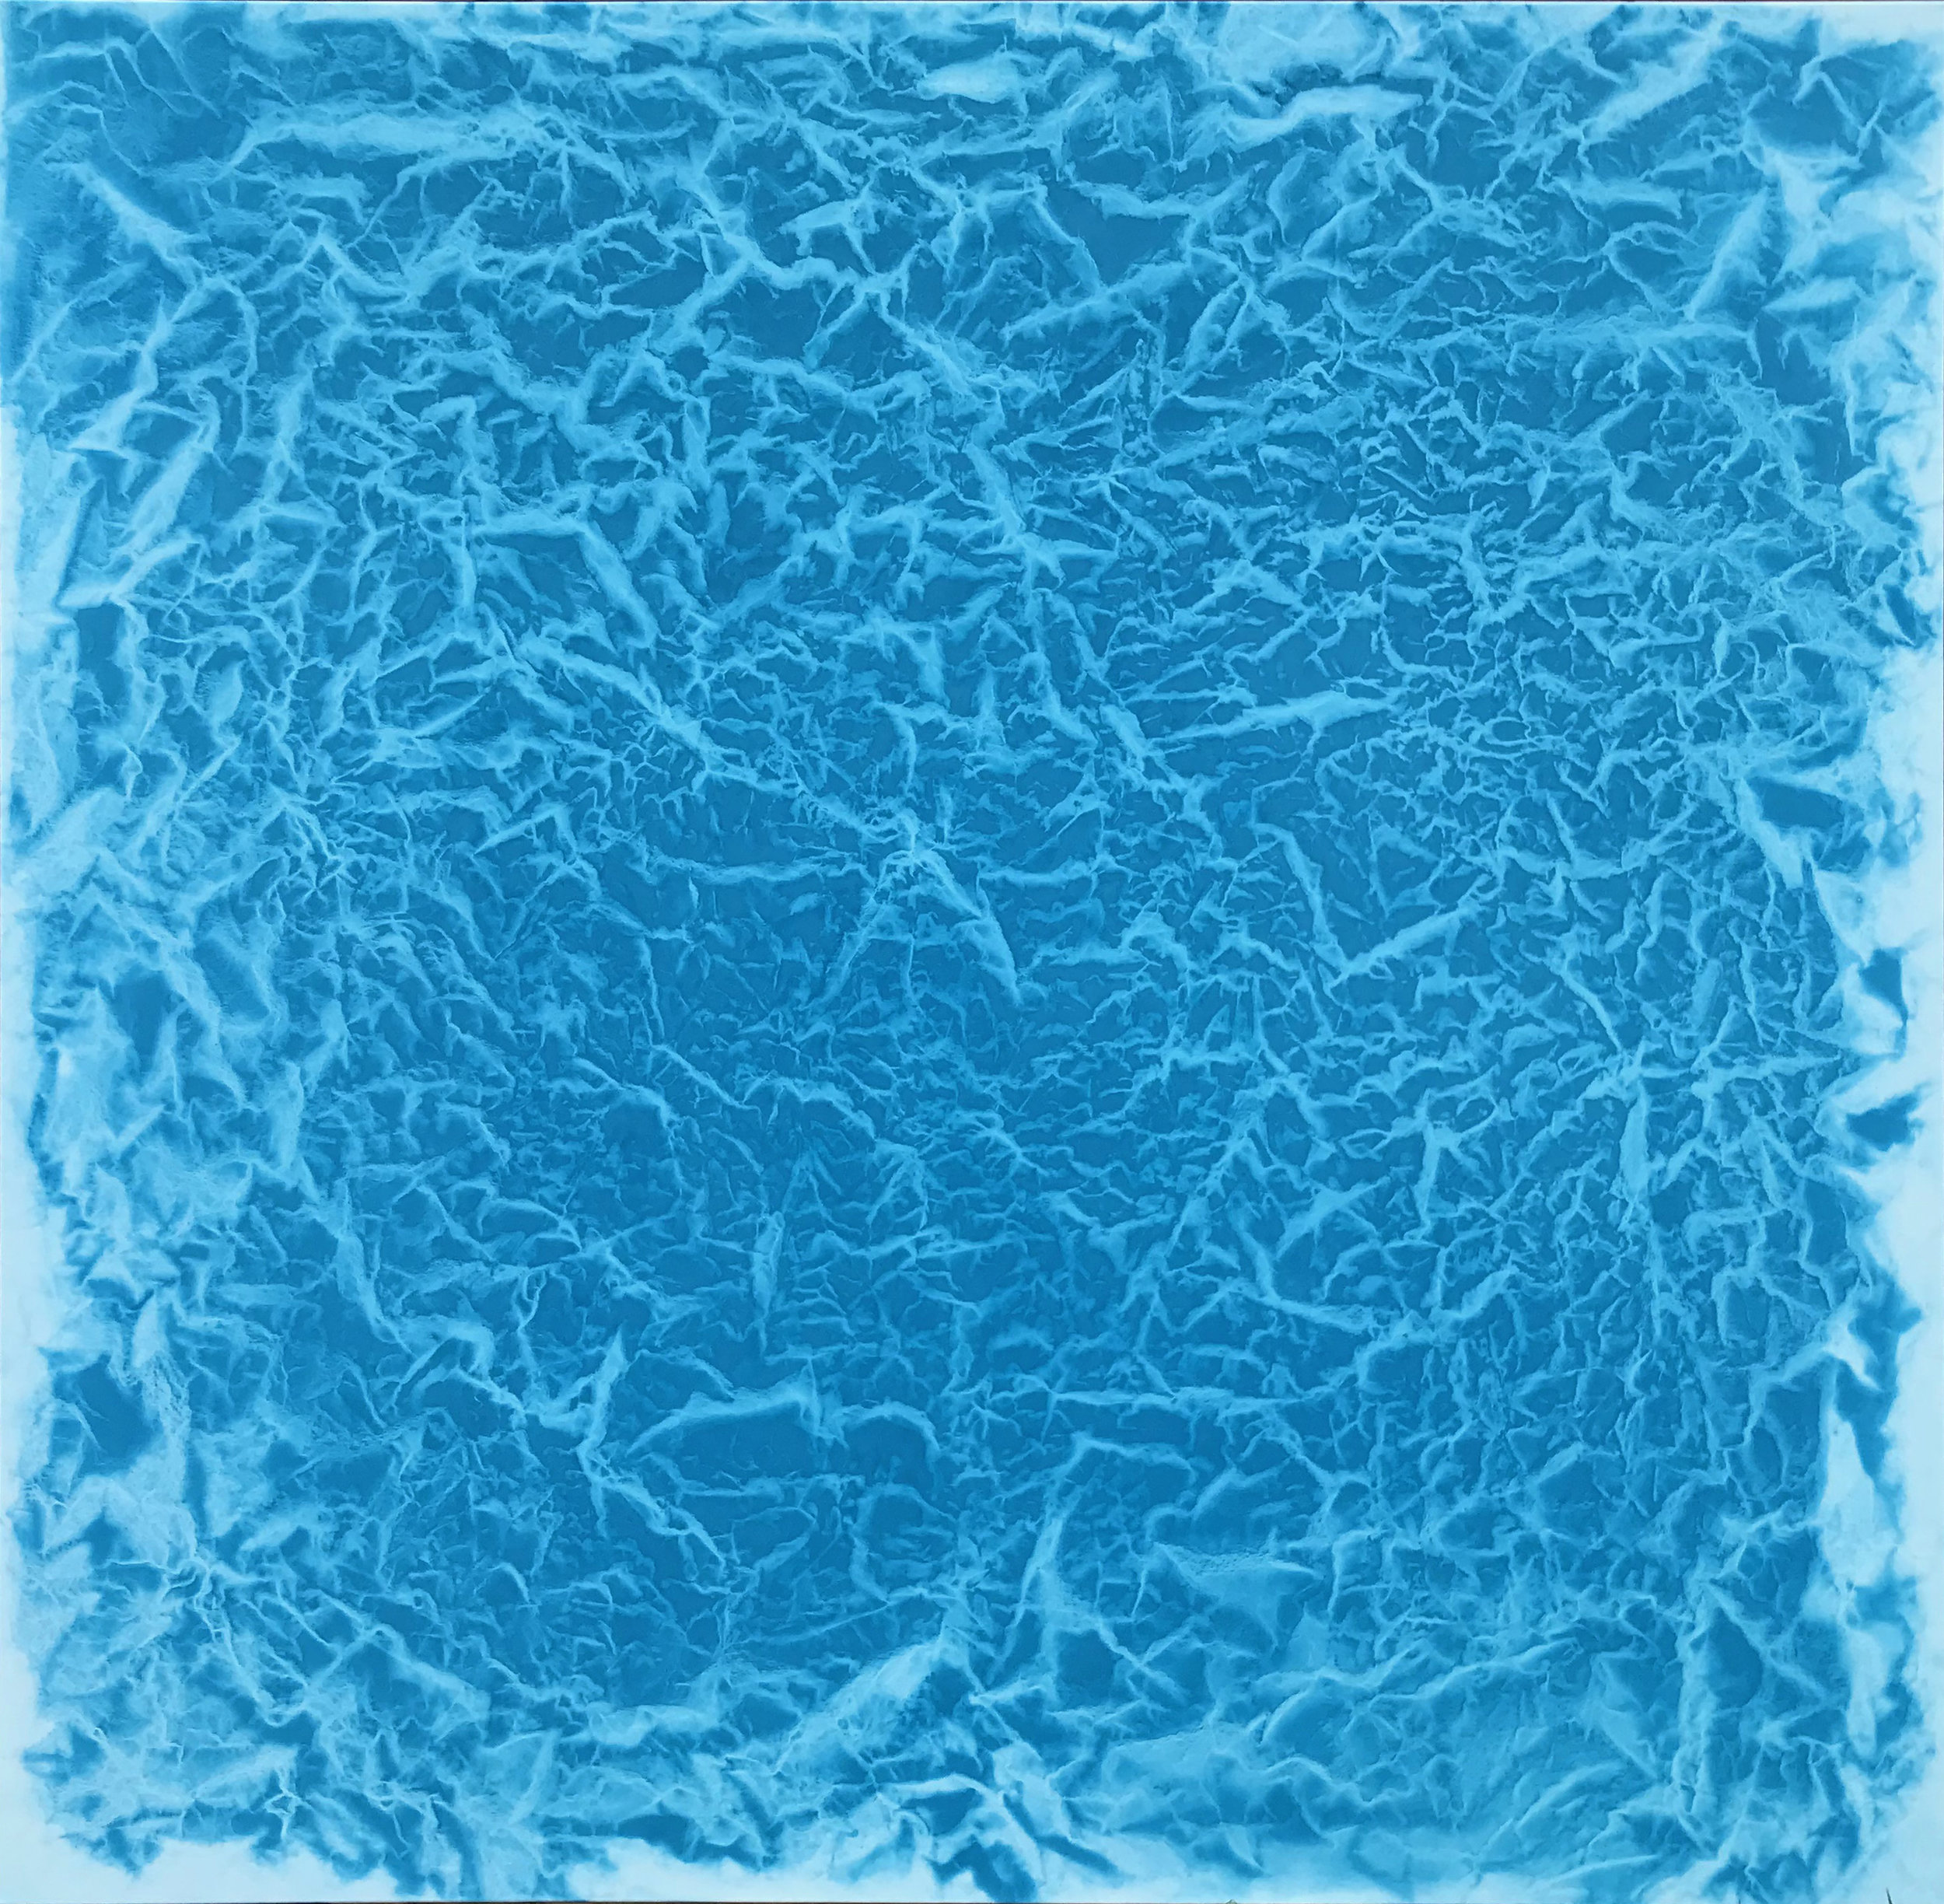 "2018 Water and Light Series #1401 Pigment, oil, alkyd on canvas (Cobalt Blue Green) 62"" x 64"" 157.48 x 162.56 cm © Vicky Colombet, all rights reserved."